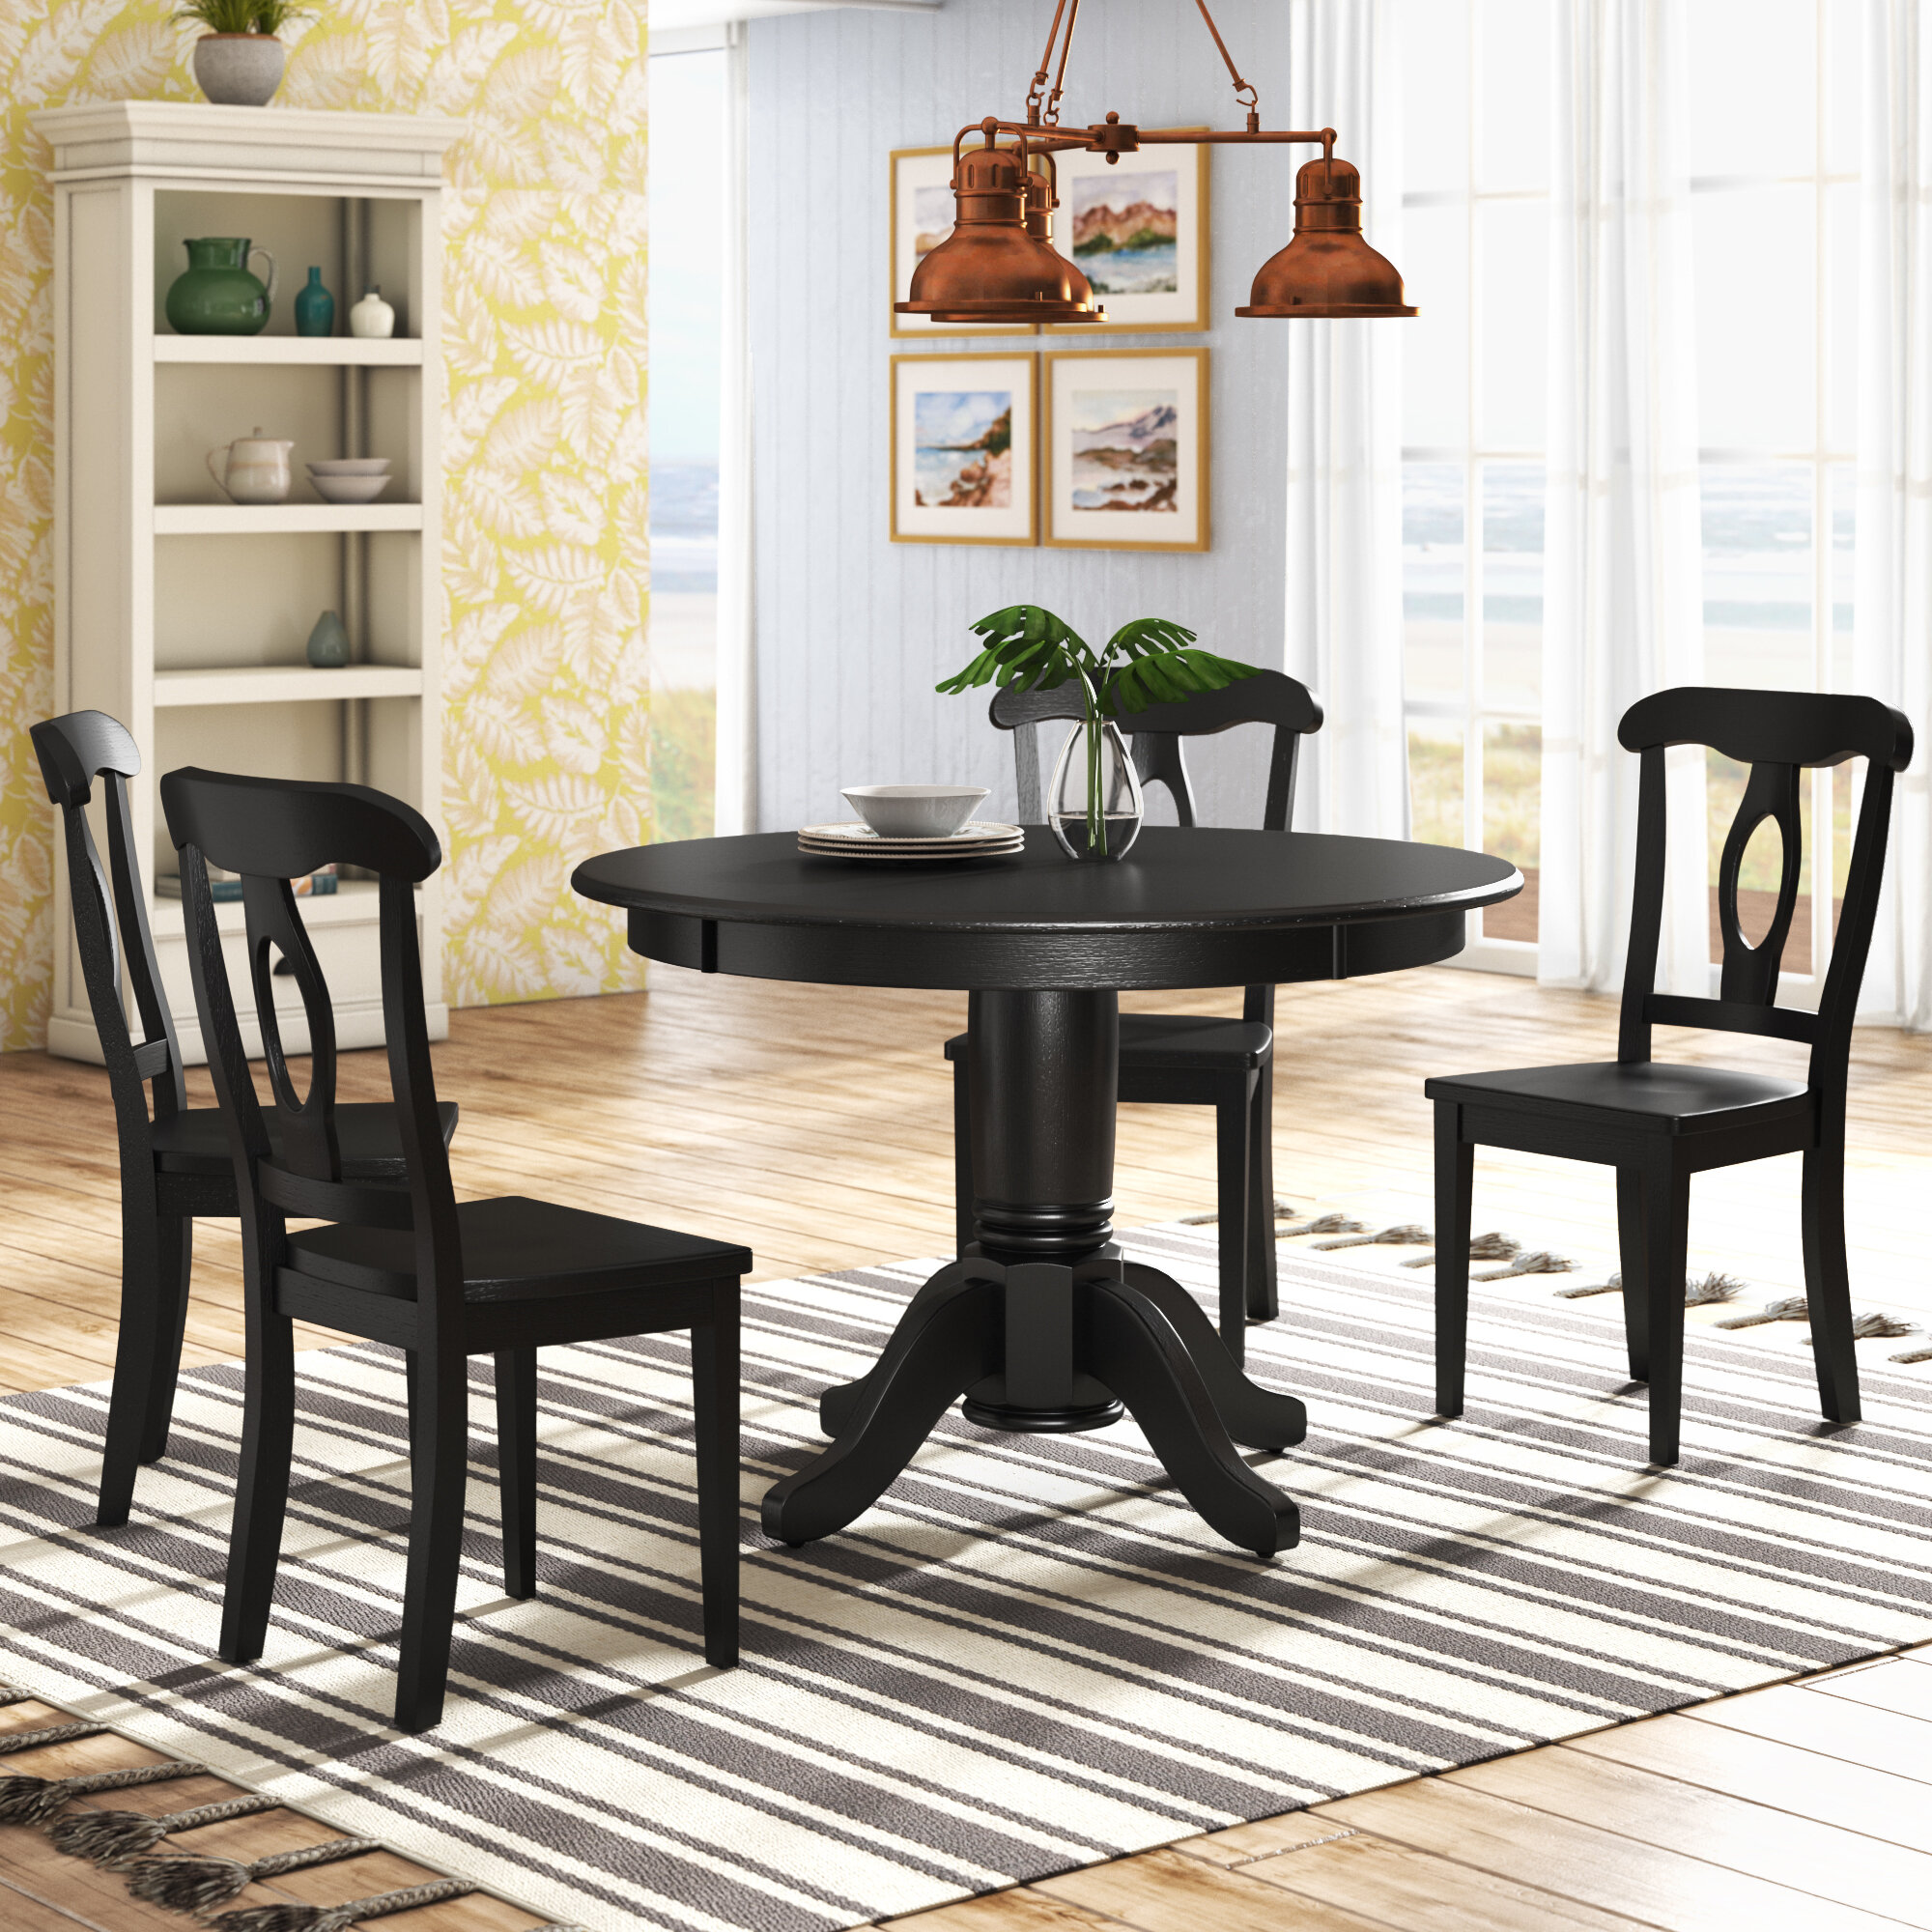 Kitchen & Dining Room Sets | Free Shipping Over $35 | Wayfair